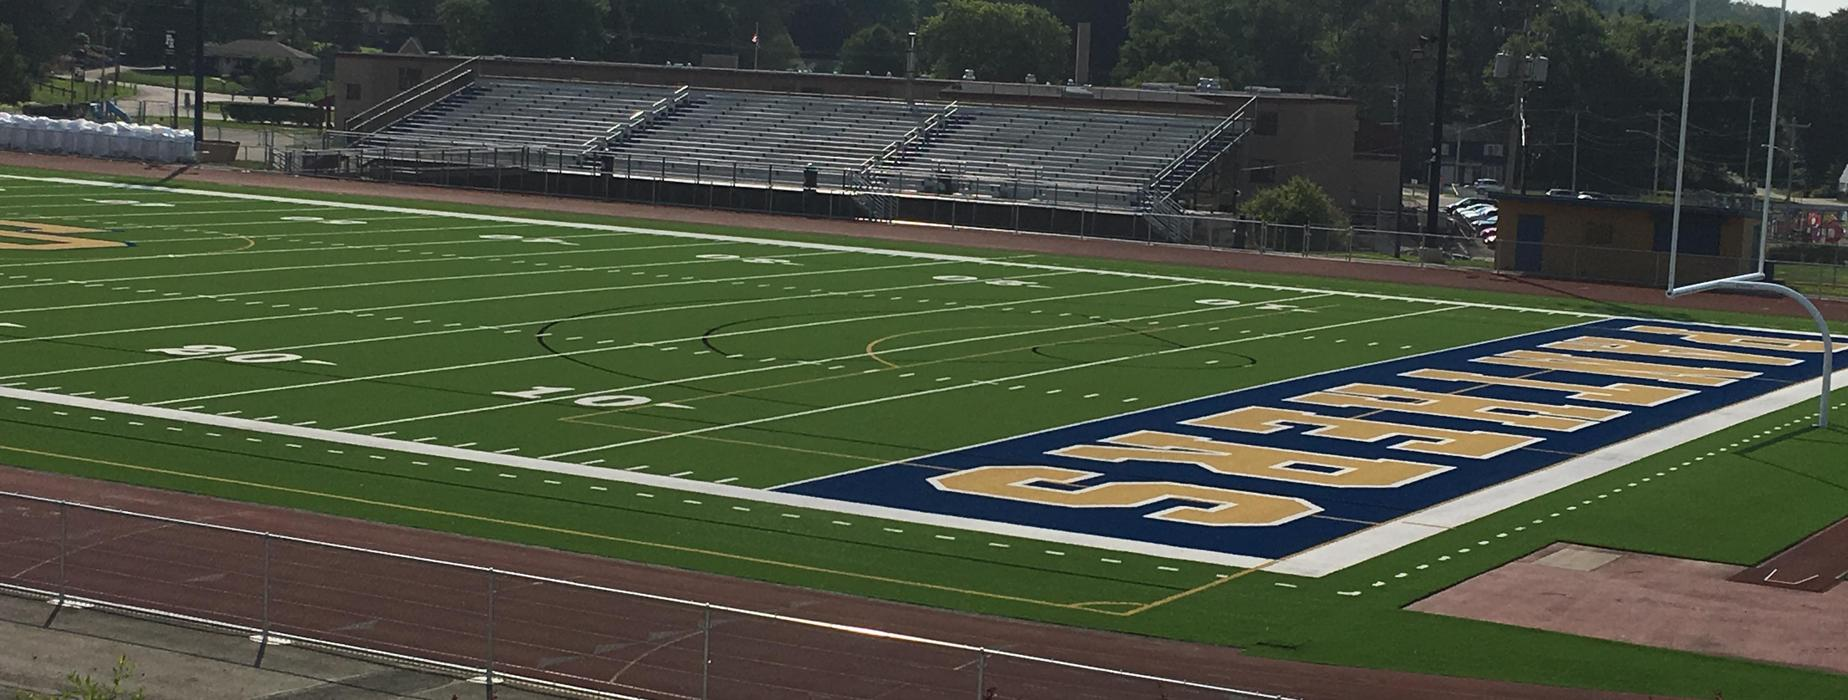 The new artificial turf field at Panther Stadium.